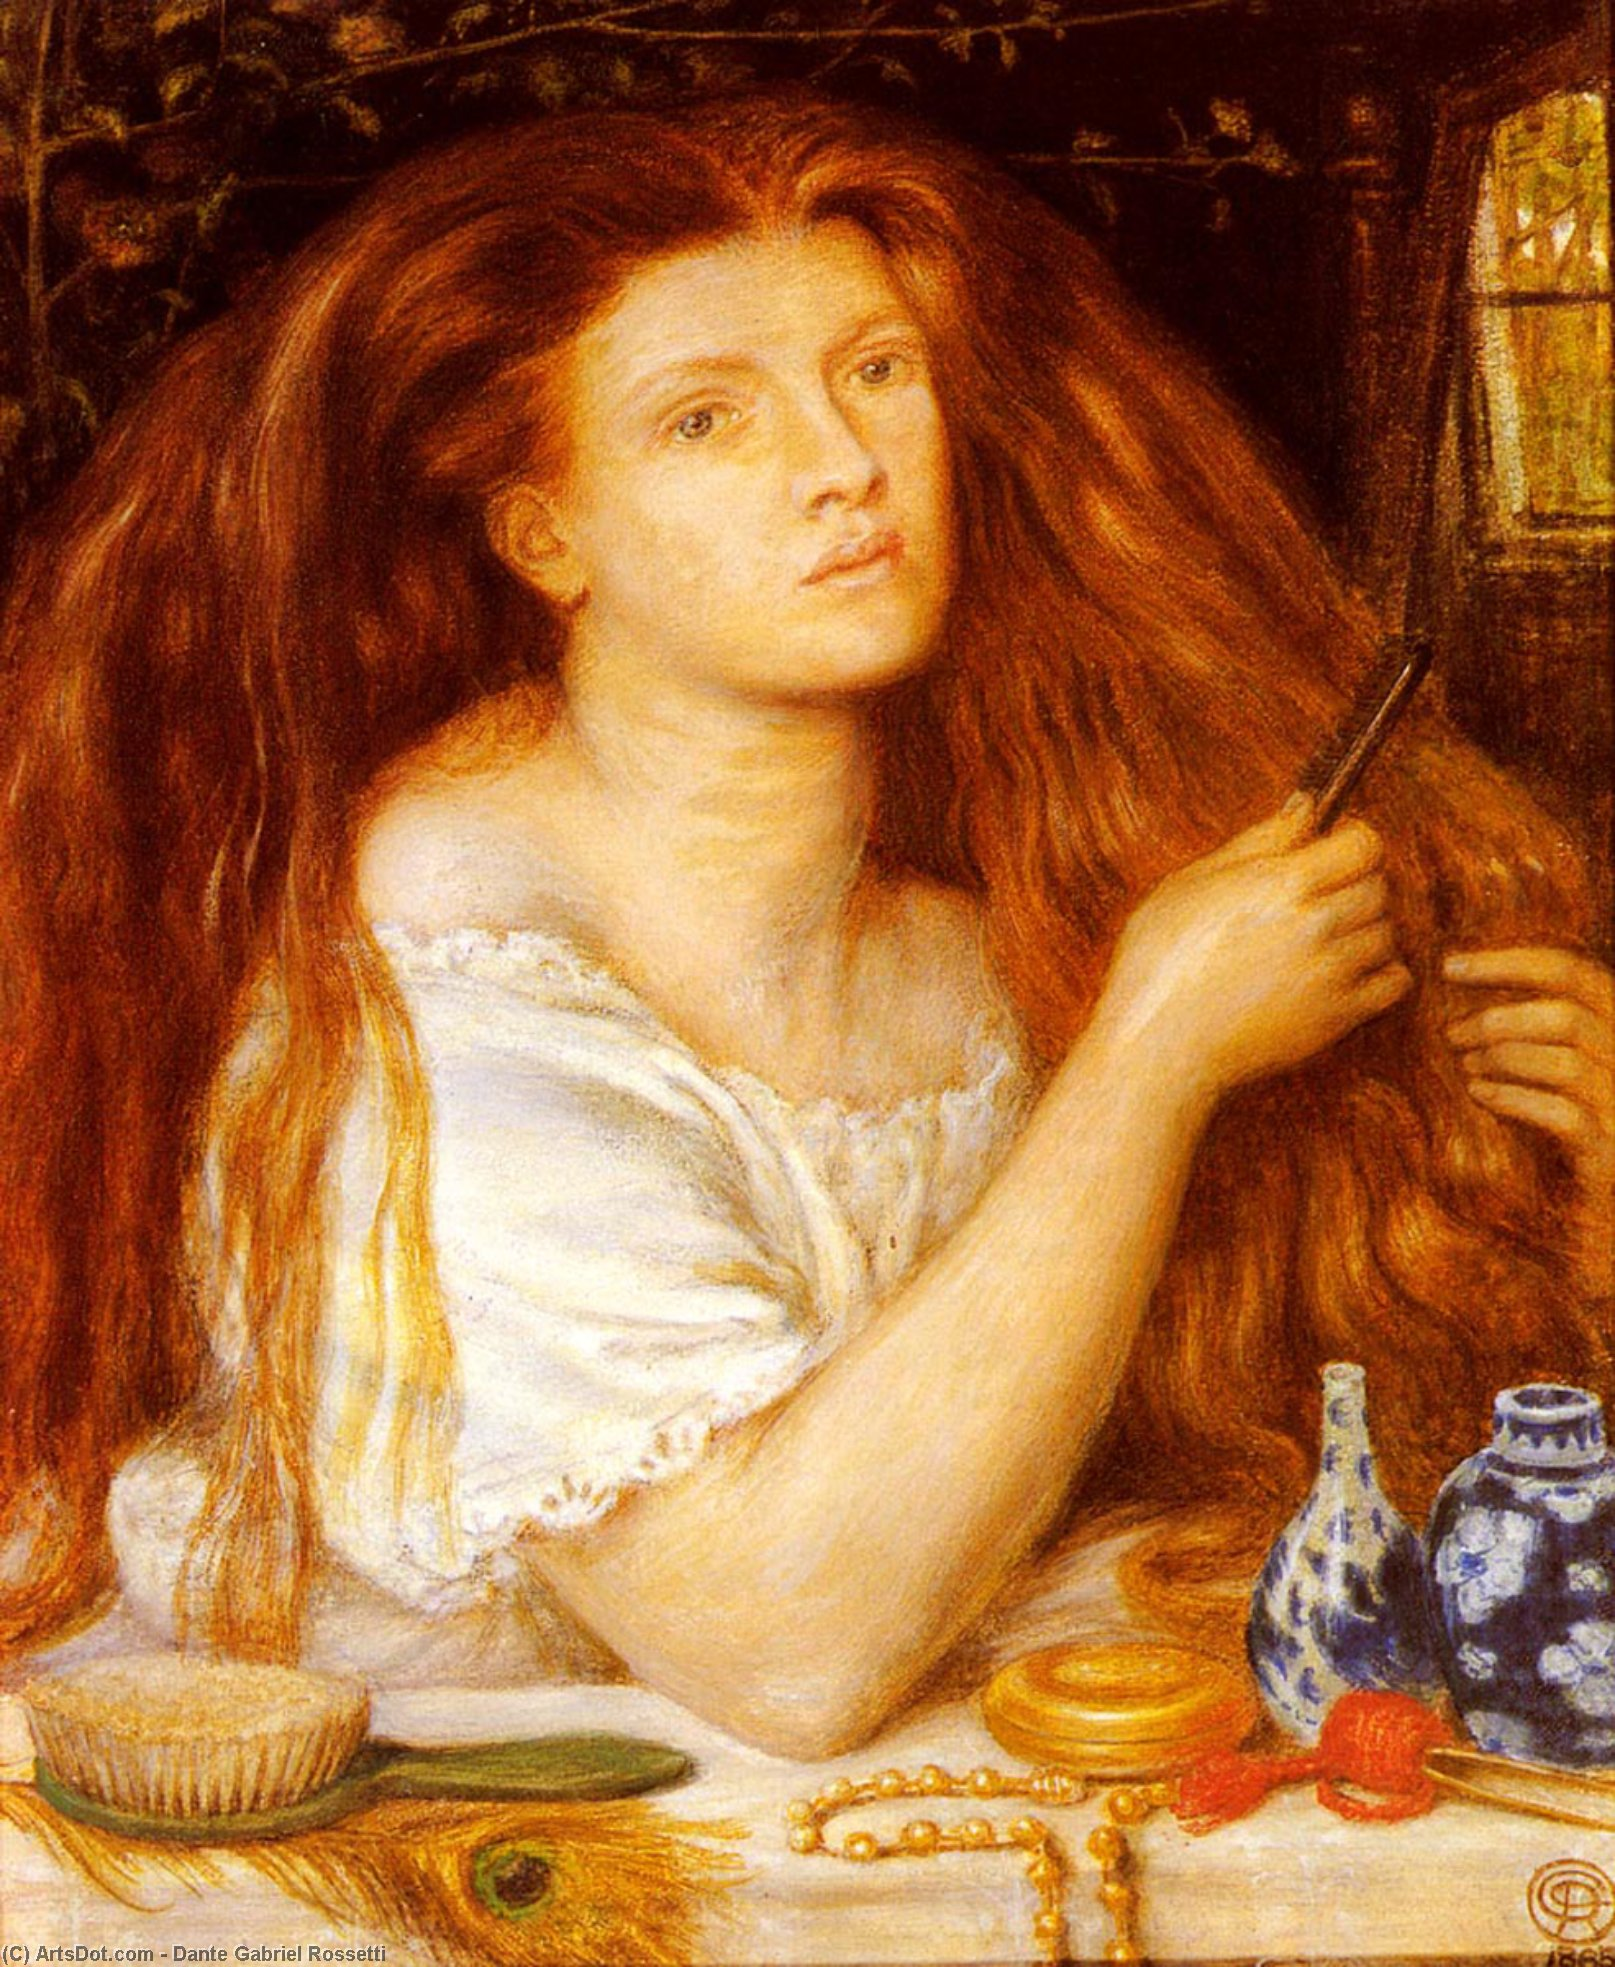 Woman Combing Her Hair, 1864 by Dante Gabriel Rossetti (1828-1882, United Kingdom)